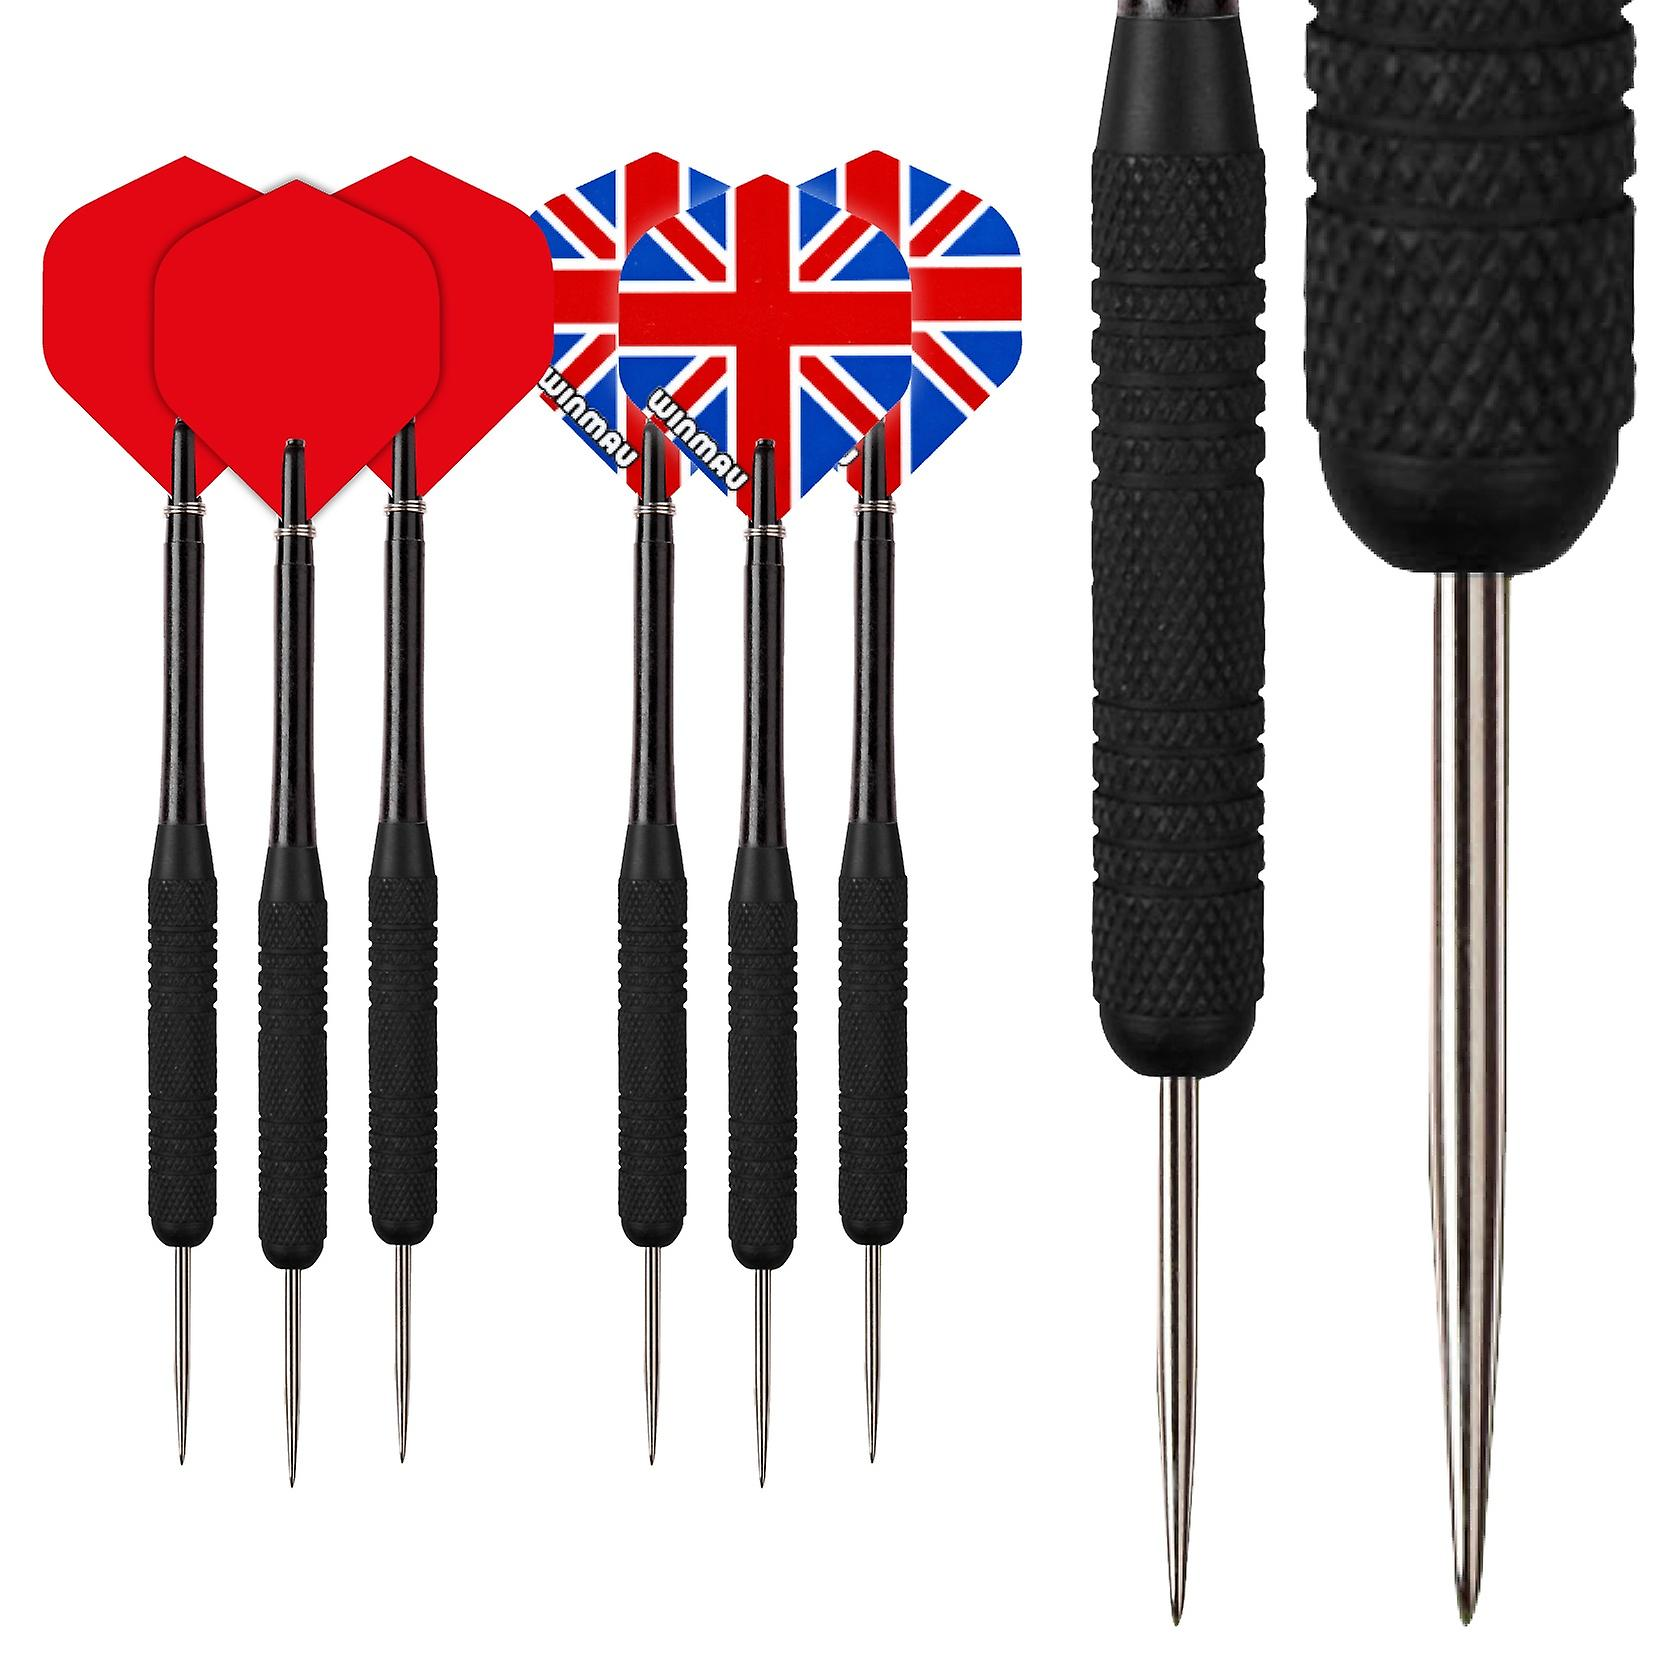 Red Dragon Strata 19 Piece Darts Set with Flights, Shafts & Red Dragon Checkout Card